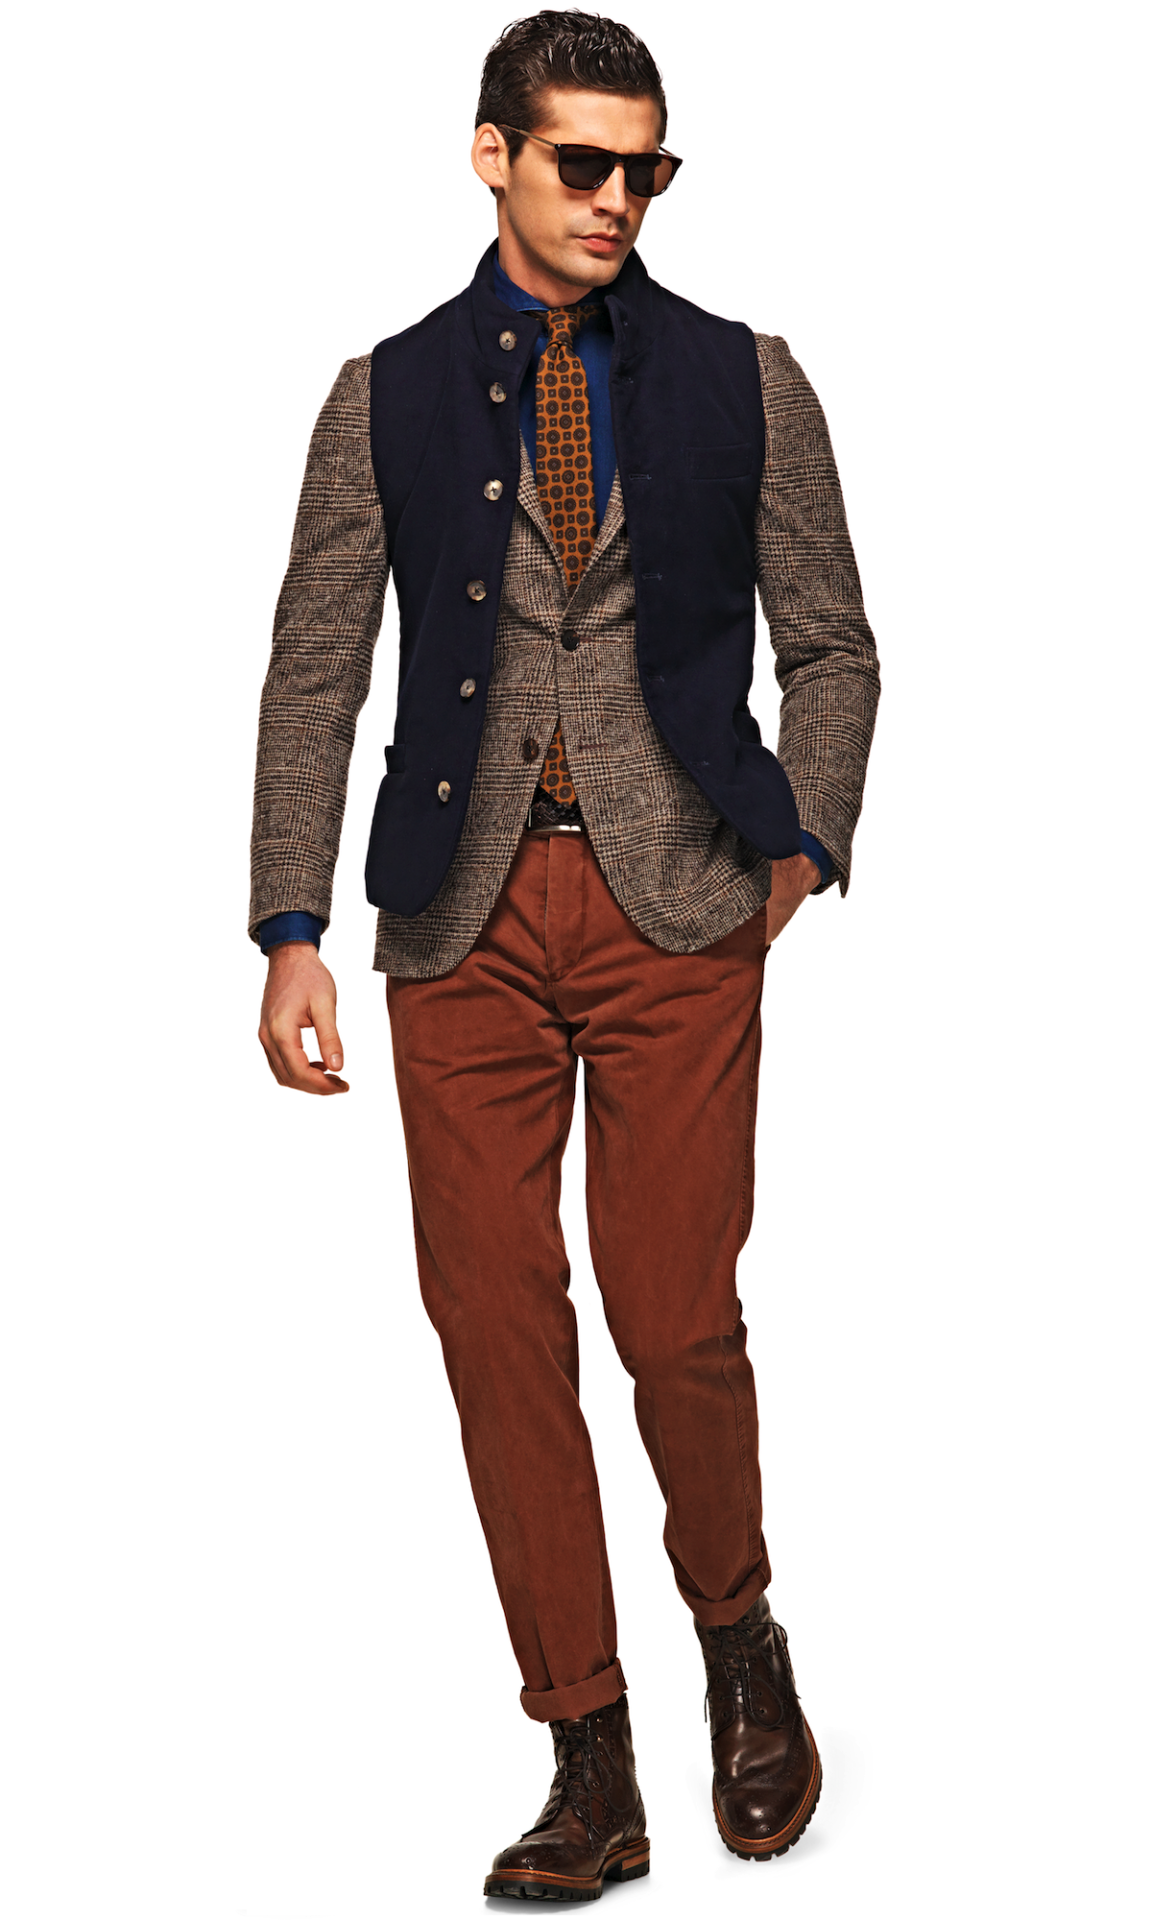 suitsupply:  First Look: Fall/Winter '13 We had our collection presentation yesterday in Milan and it was a smashing success! Here's a quick sneak peek of what we showed all of the editors on hand. More looks to come later this week…